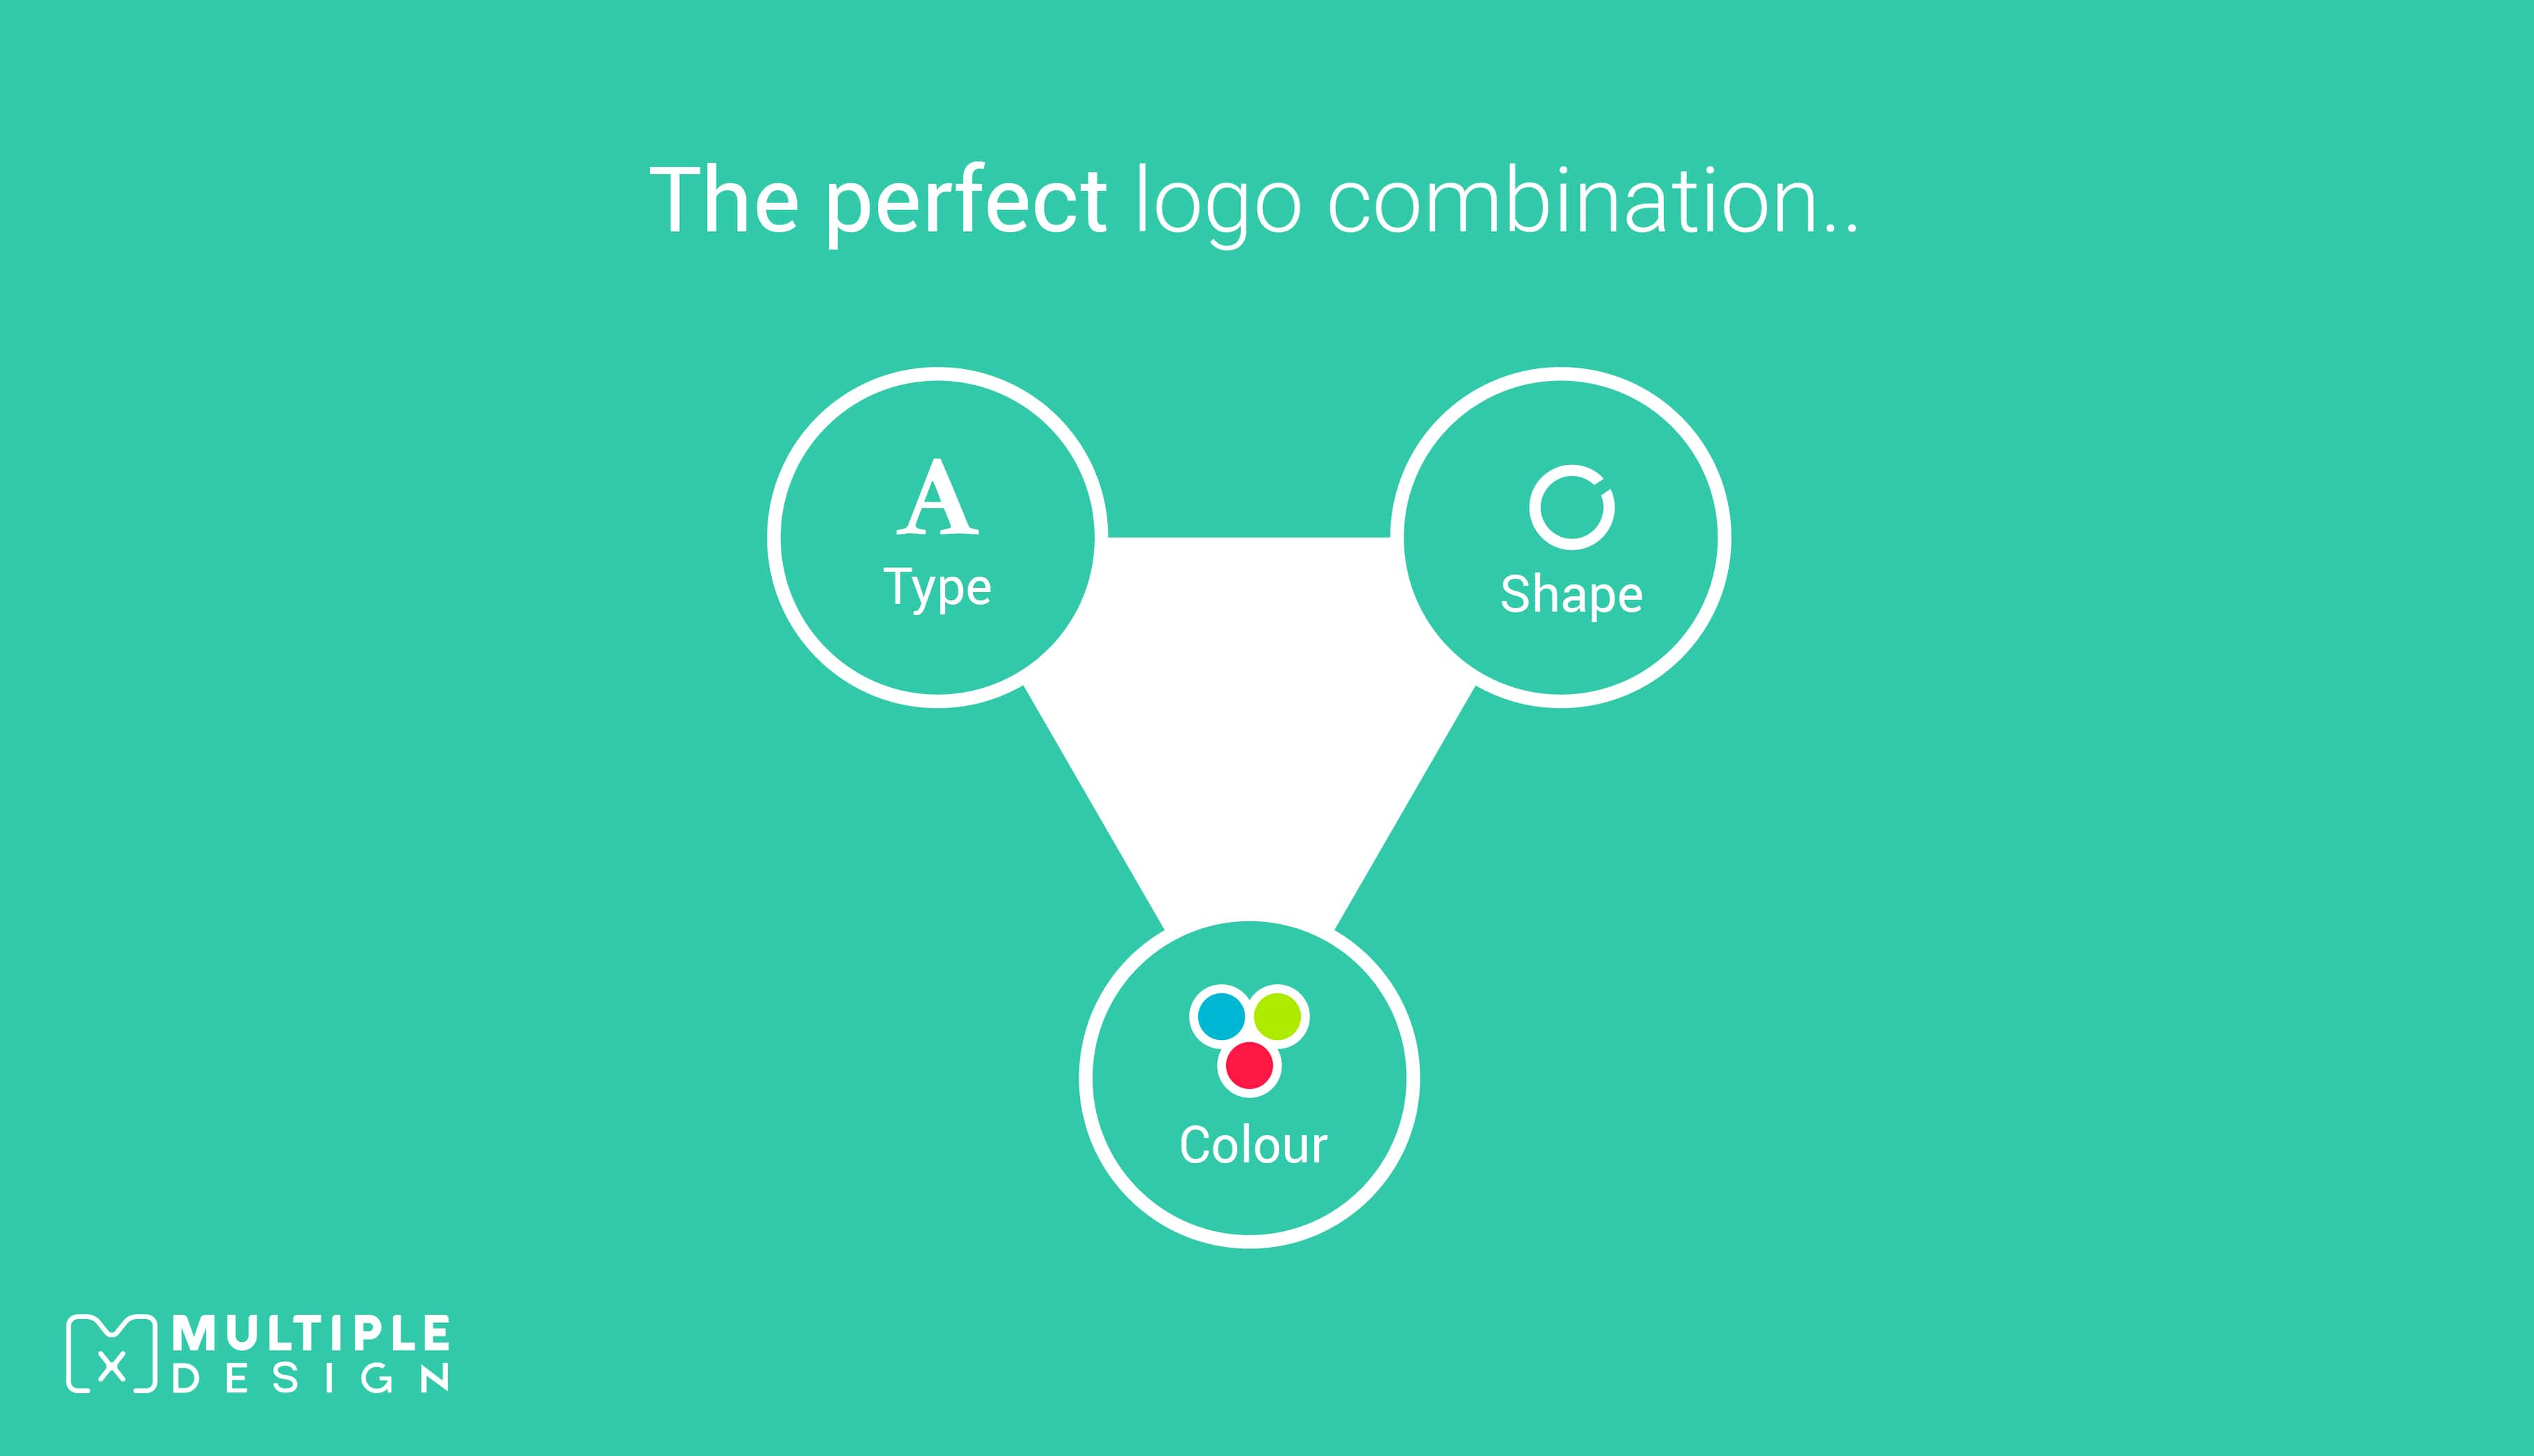 The perfect logo combination - shape, colour, type